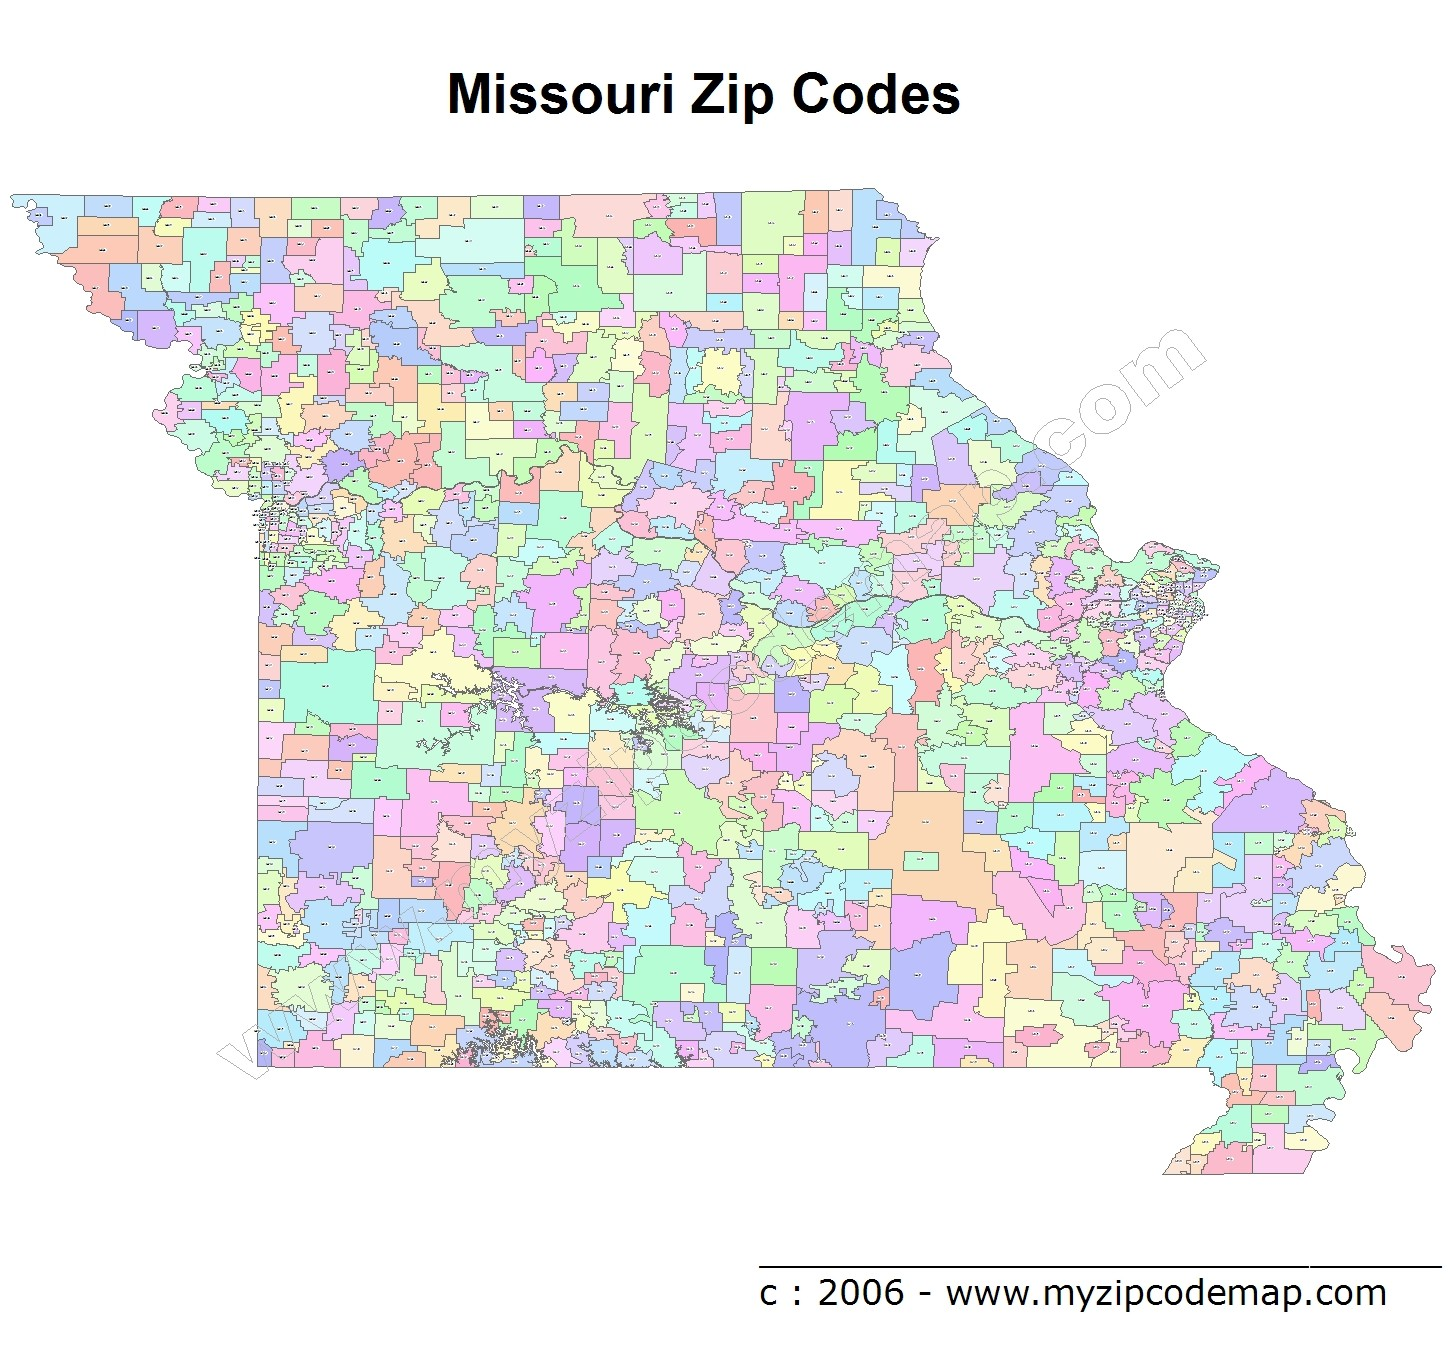 Missouri Zip Code Maps